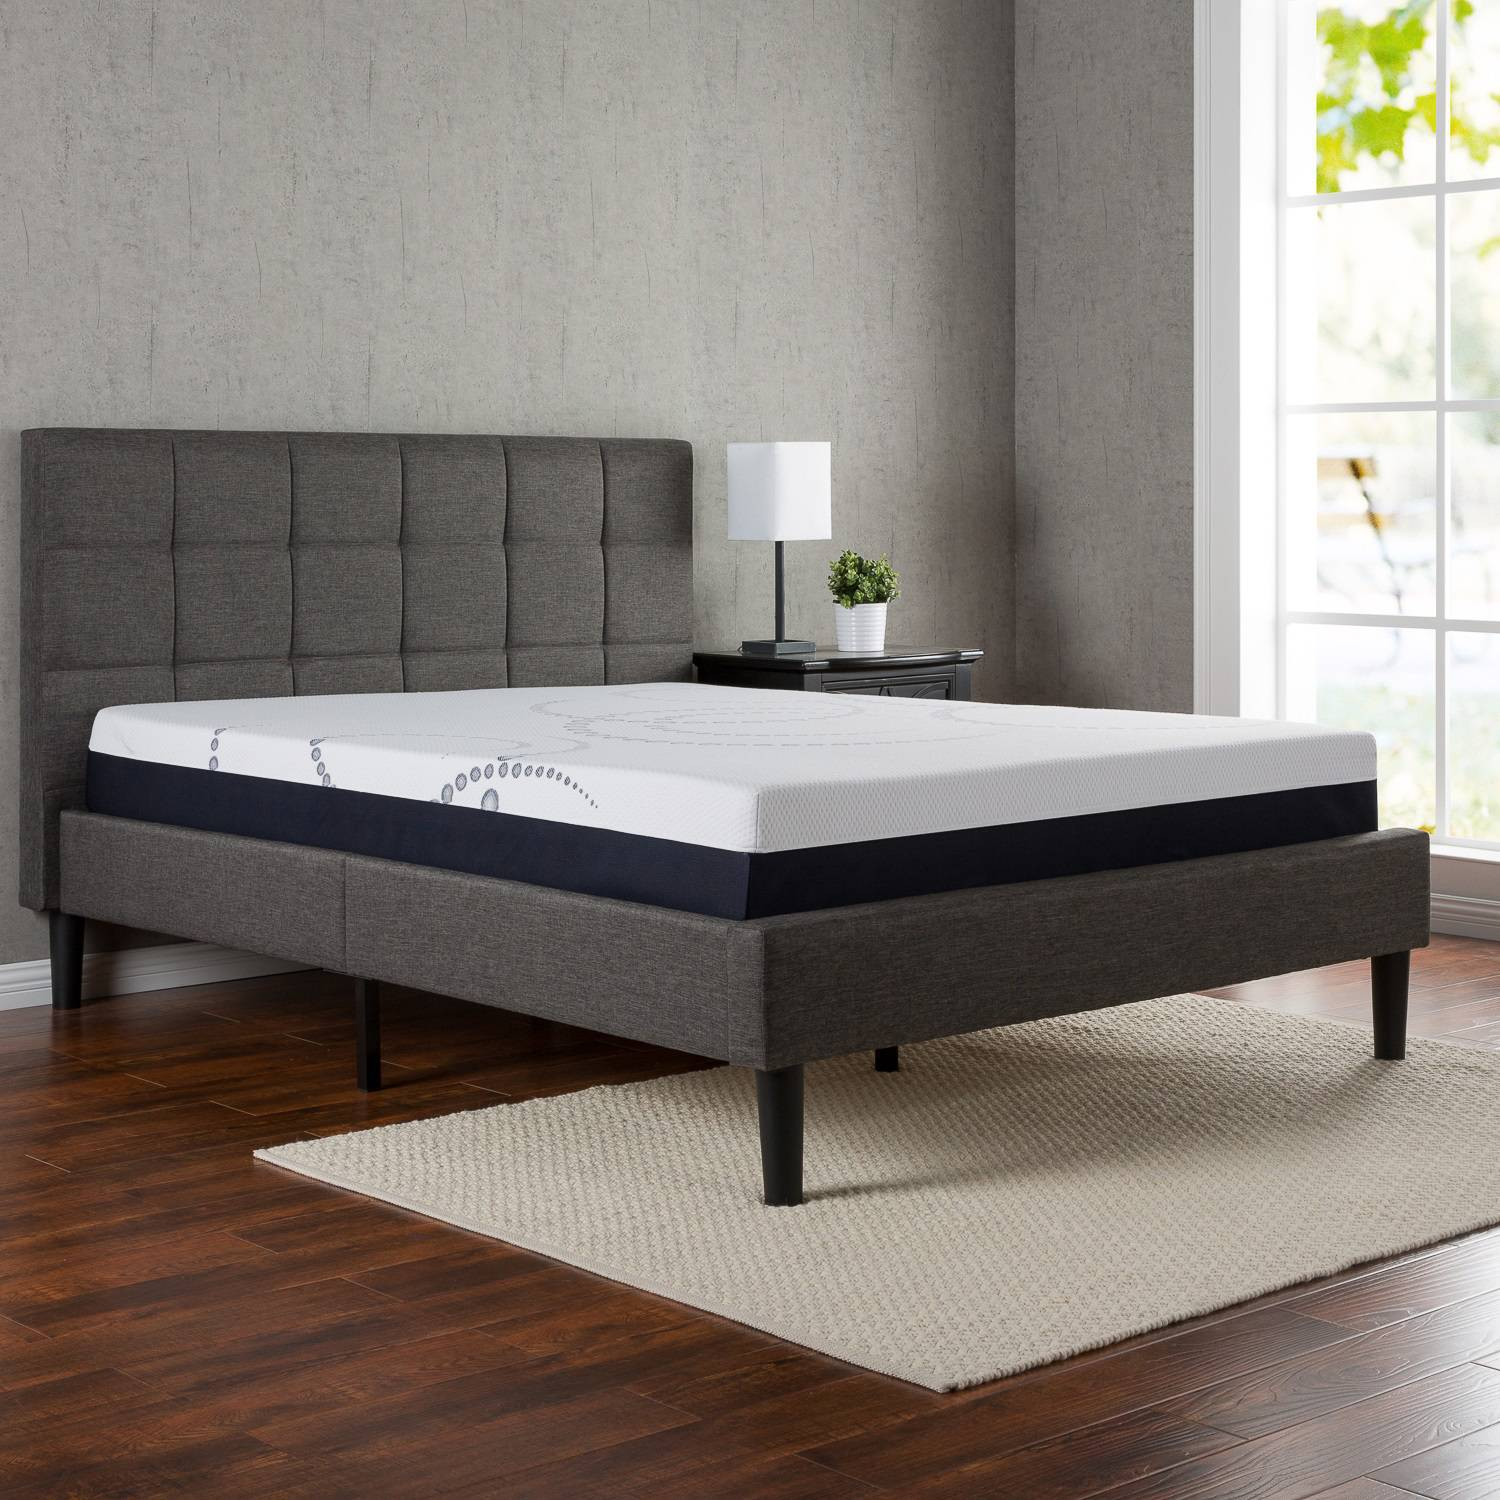 zinus upholstered square stitched platform bed with headboard and woodenslats multiple sizes  walmartcom. zinus upholstered square stitched platform bed with headboard and